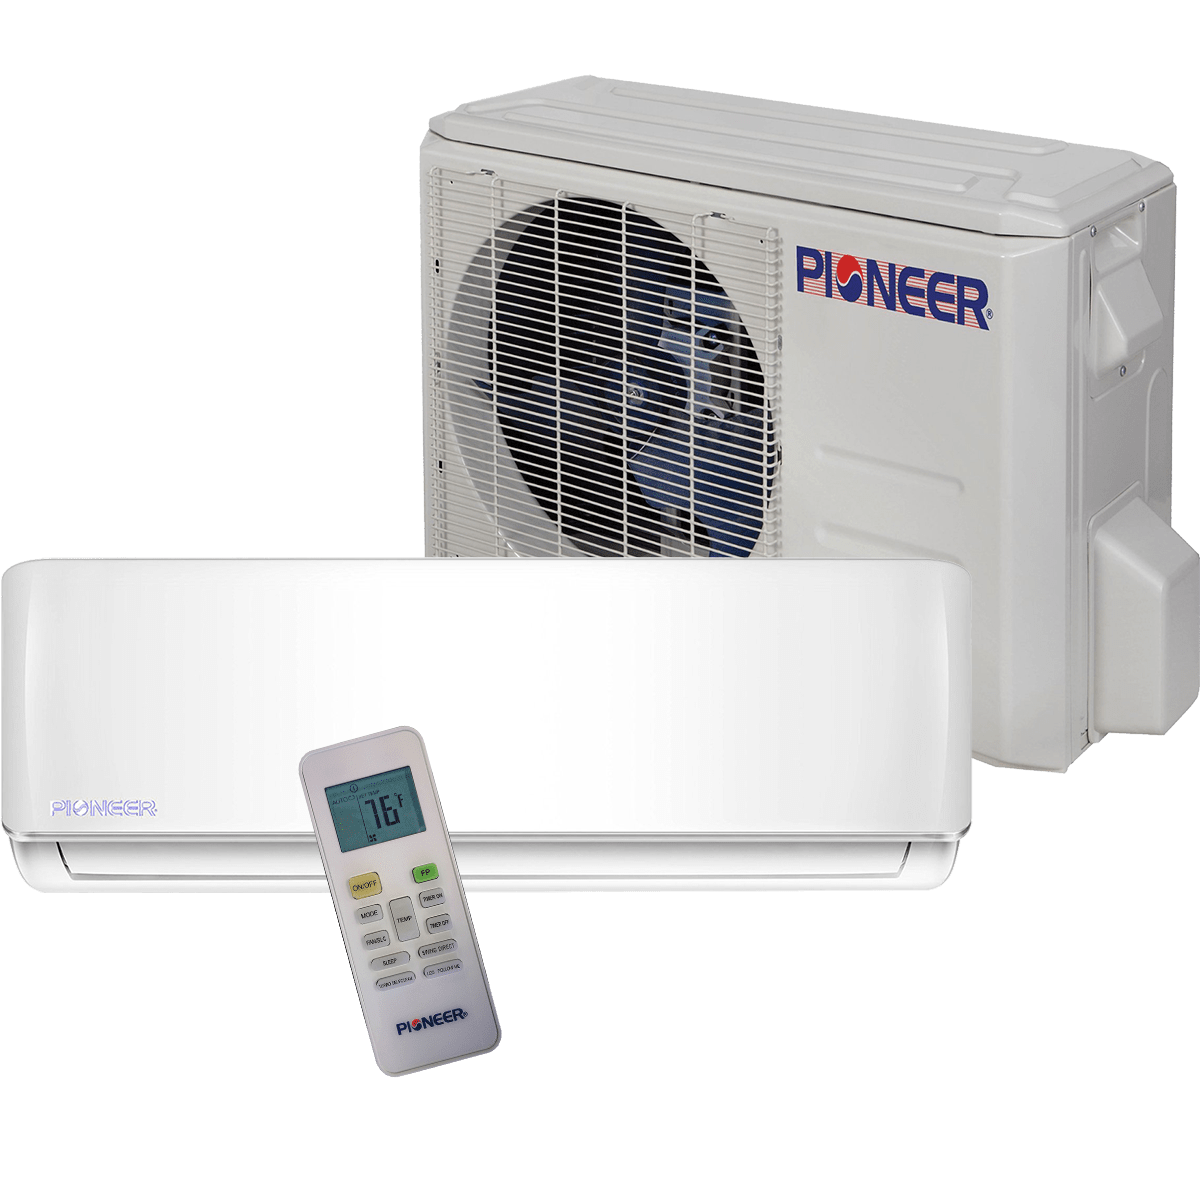 #353B68 Pioneer 9000 BTU Mini Split  230V Sylvane Brand New 1461 Best Mini Split Heat Pump Ratings images with 1200x1200 px on helpvideos.info - Air Conditioners, Air Coolers and more